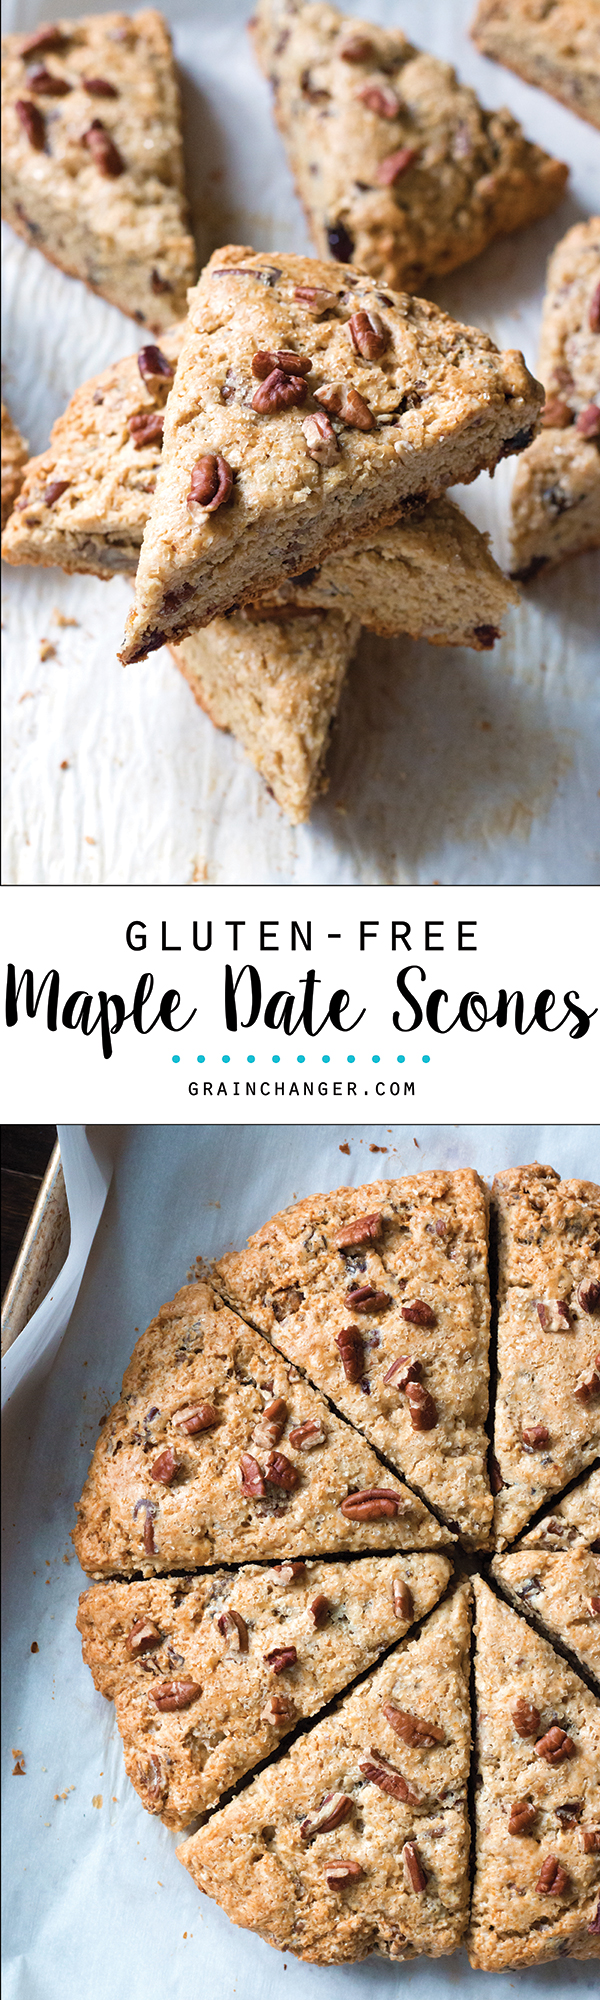 Gluten-Free Maple Date Scones | www.grainchanger.com